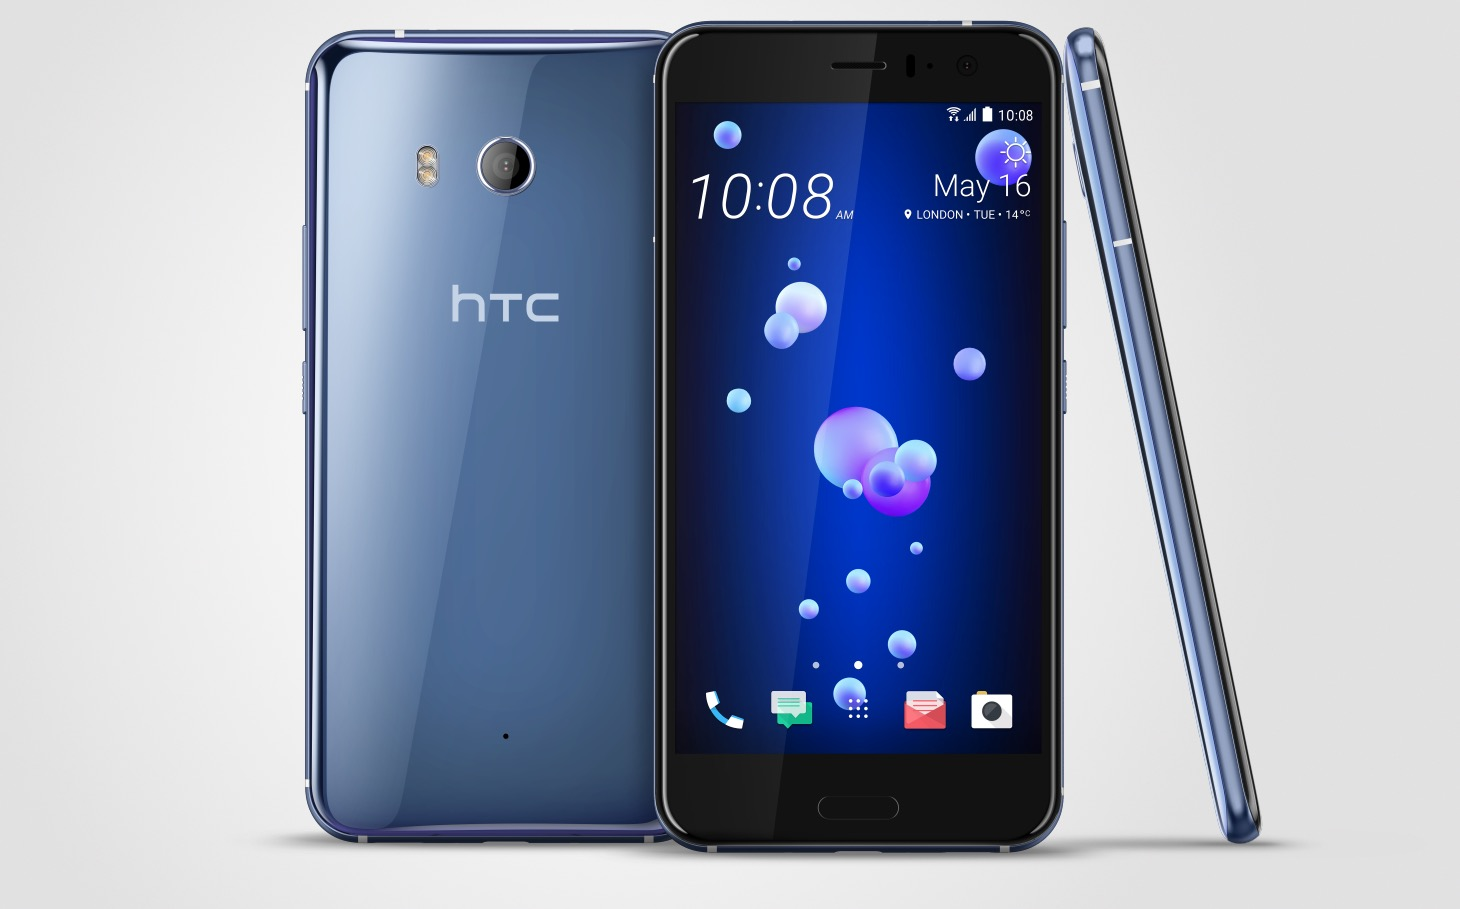 HTC U11 smartphone launched in india with 6GB RAM and 128GB internal storage at ₹ 51,990